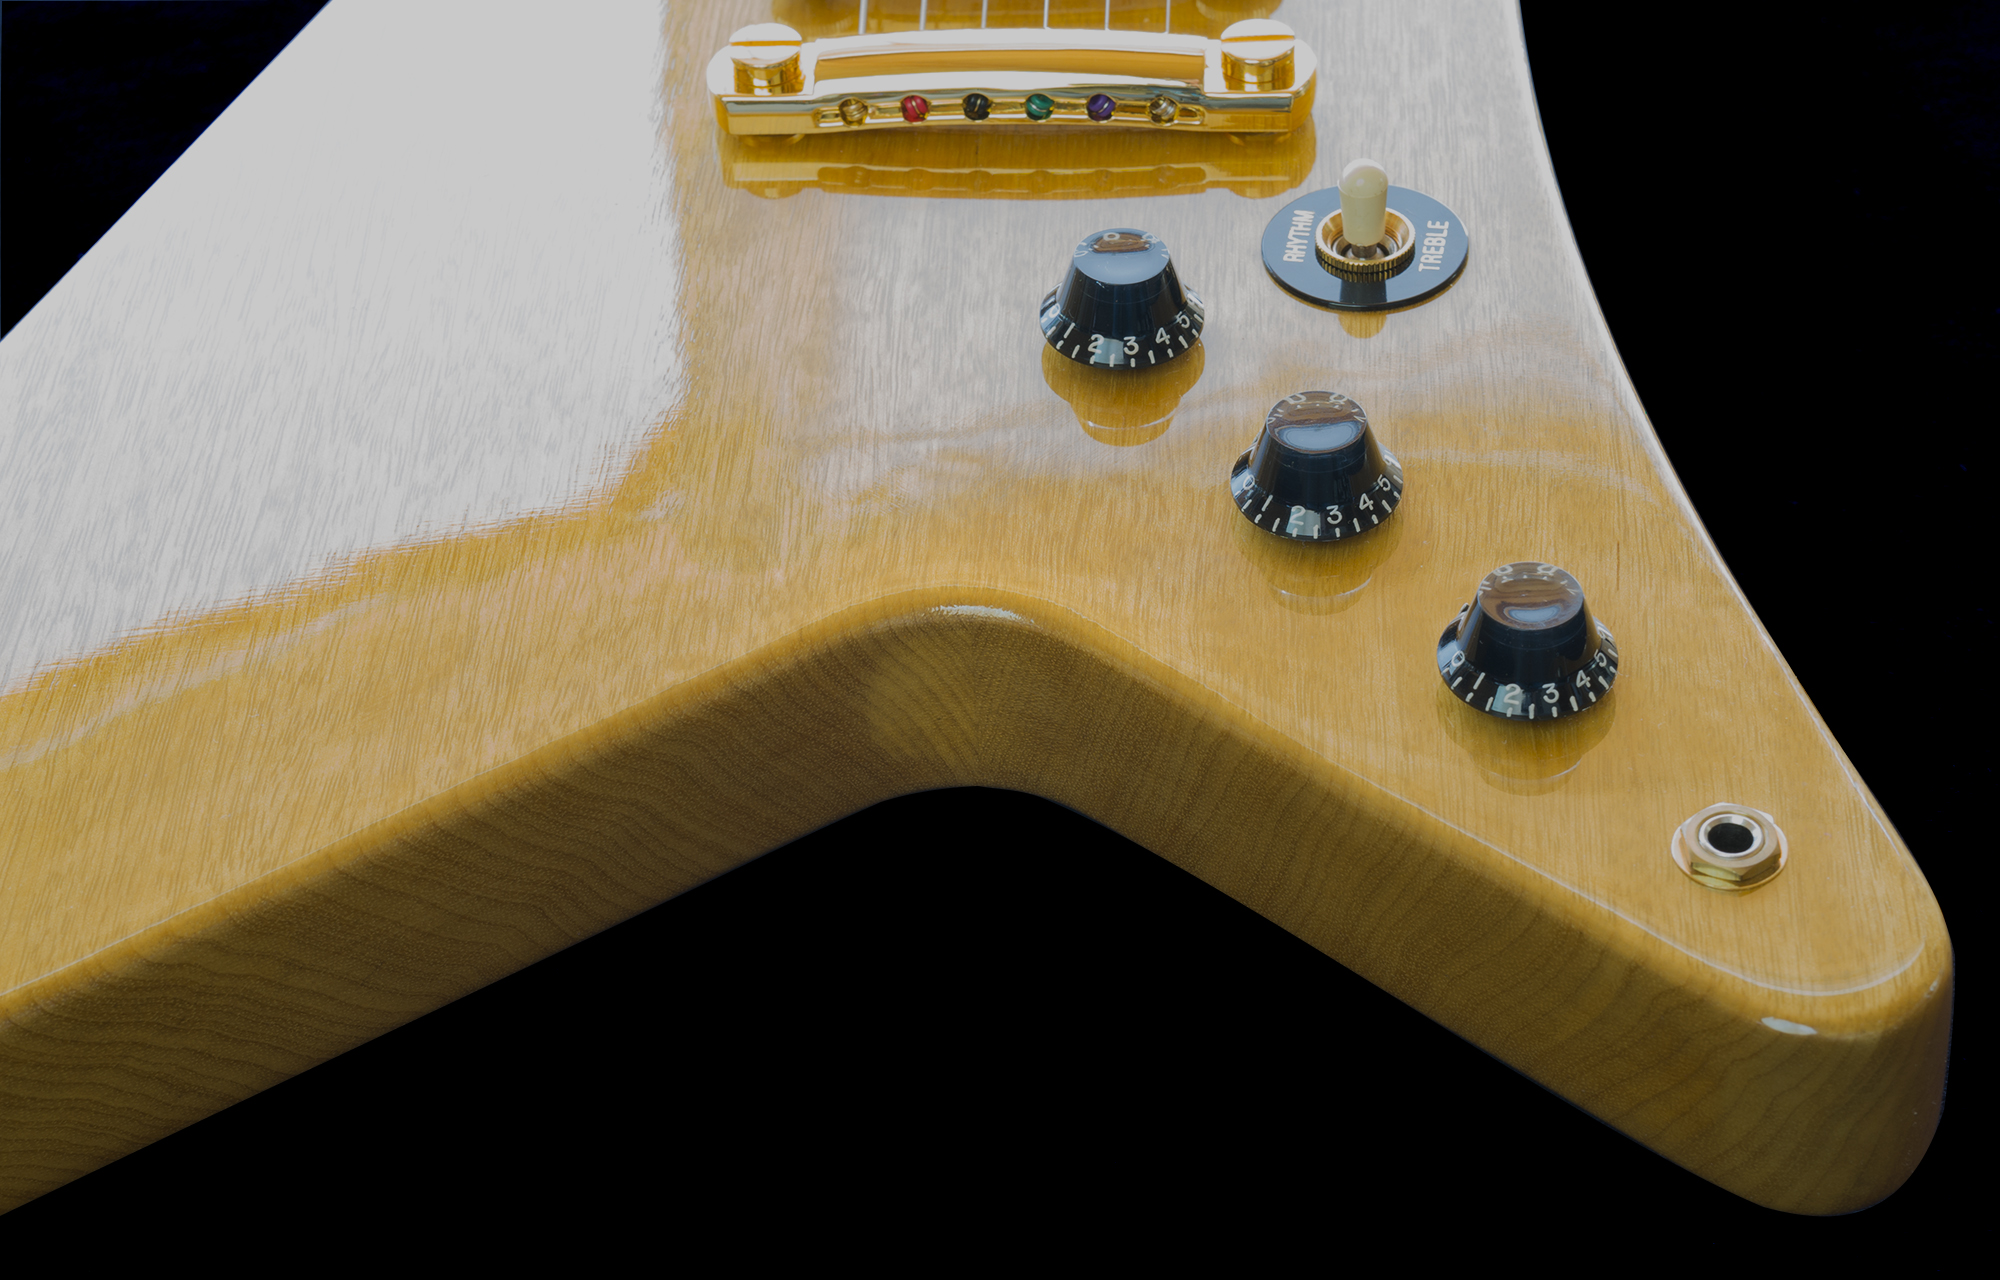 """You can see the 2-piece body construction. It is rare to see a nicely matched Korina body with """"center-seam"""" construction. Gibson did Not have much high-quality Korina wood."""